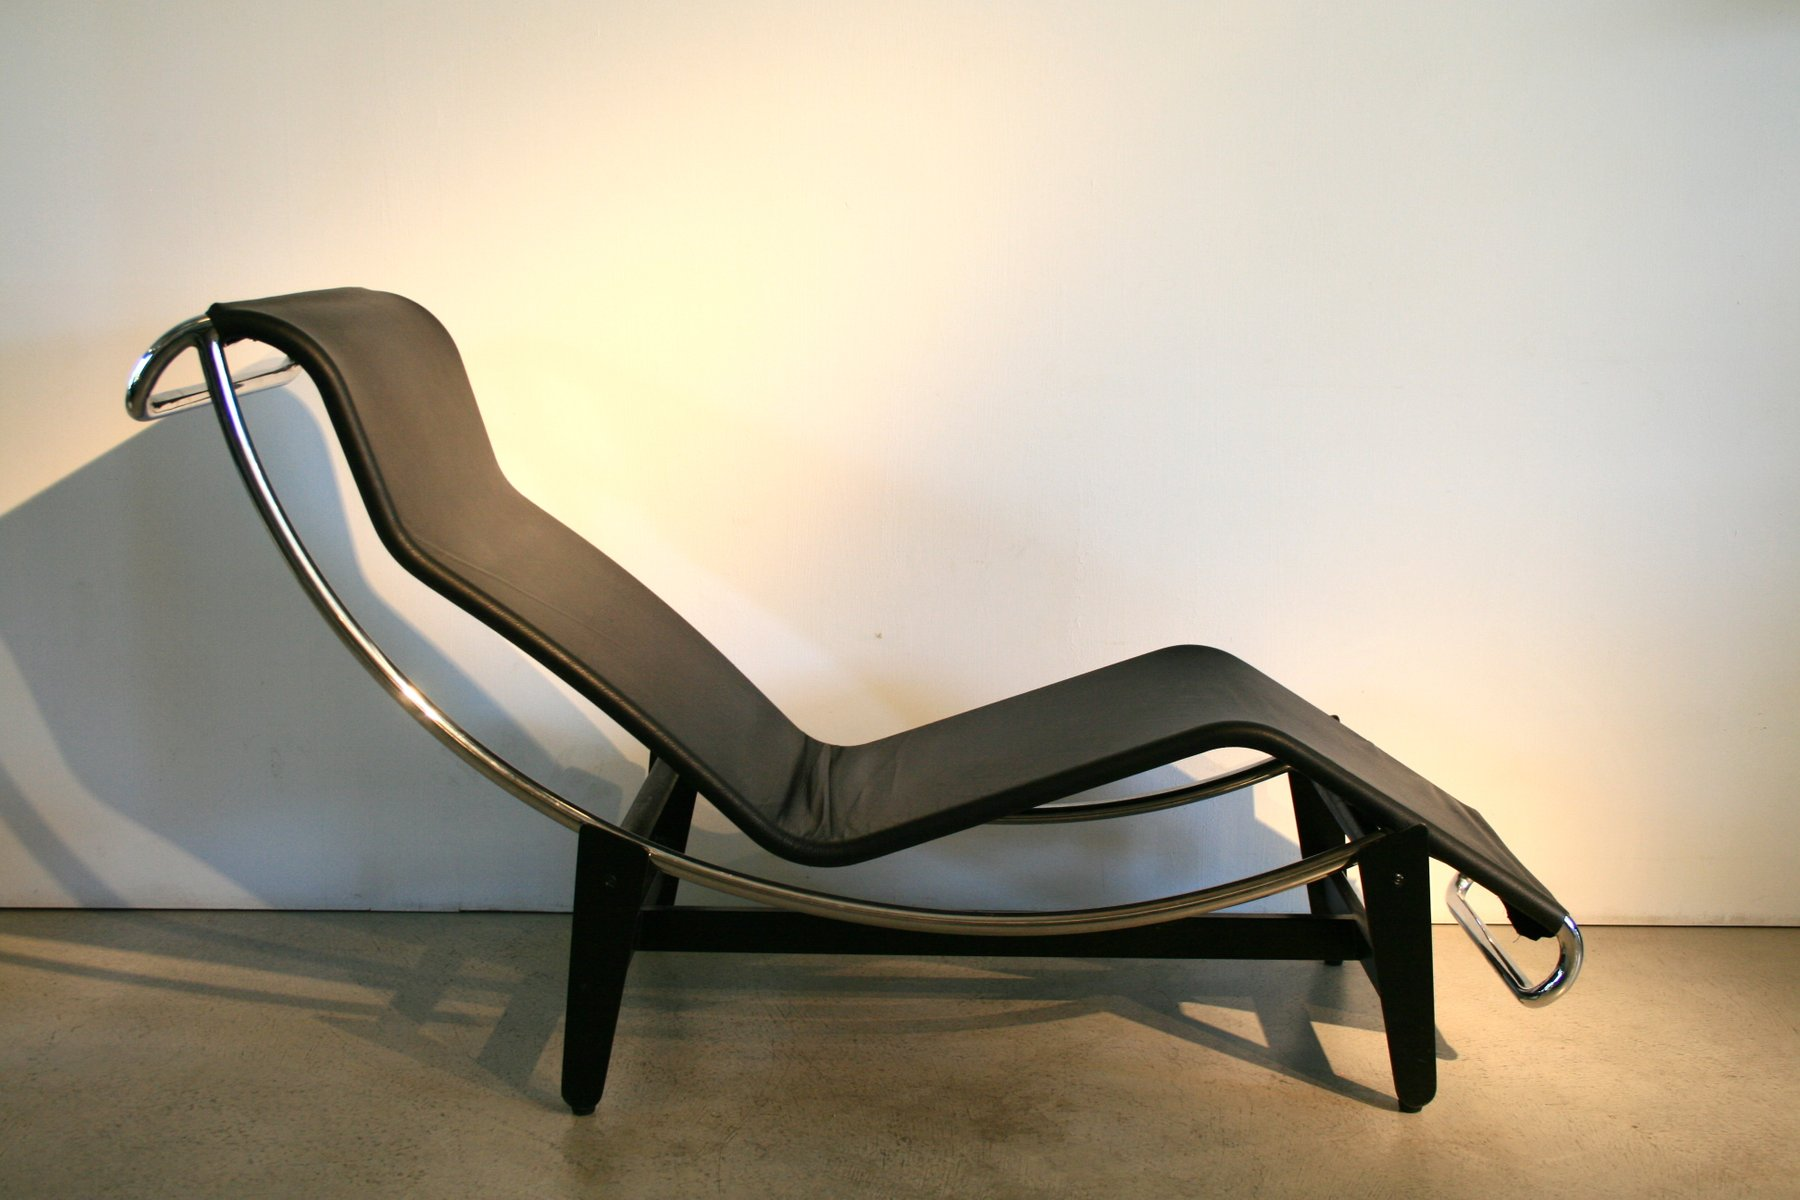 Vintage Lc4 Lounge Chair By Le Corbusier For Wohnbedarf